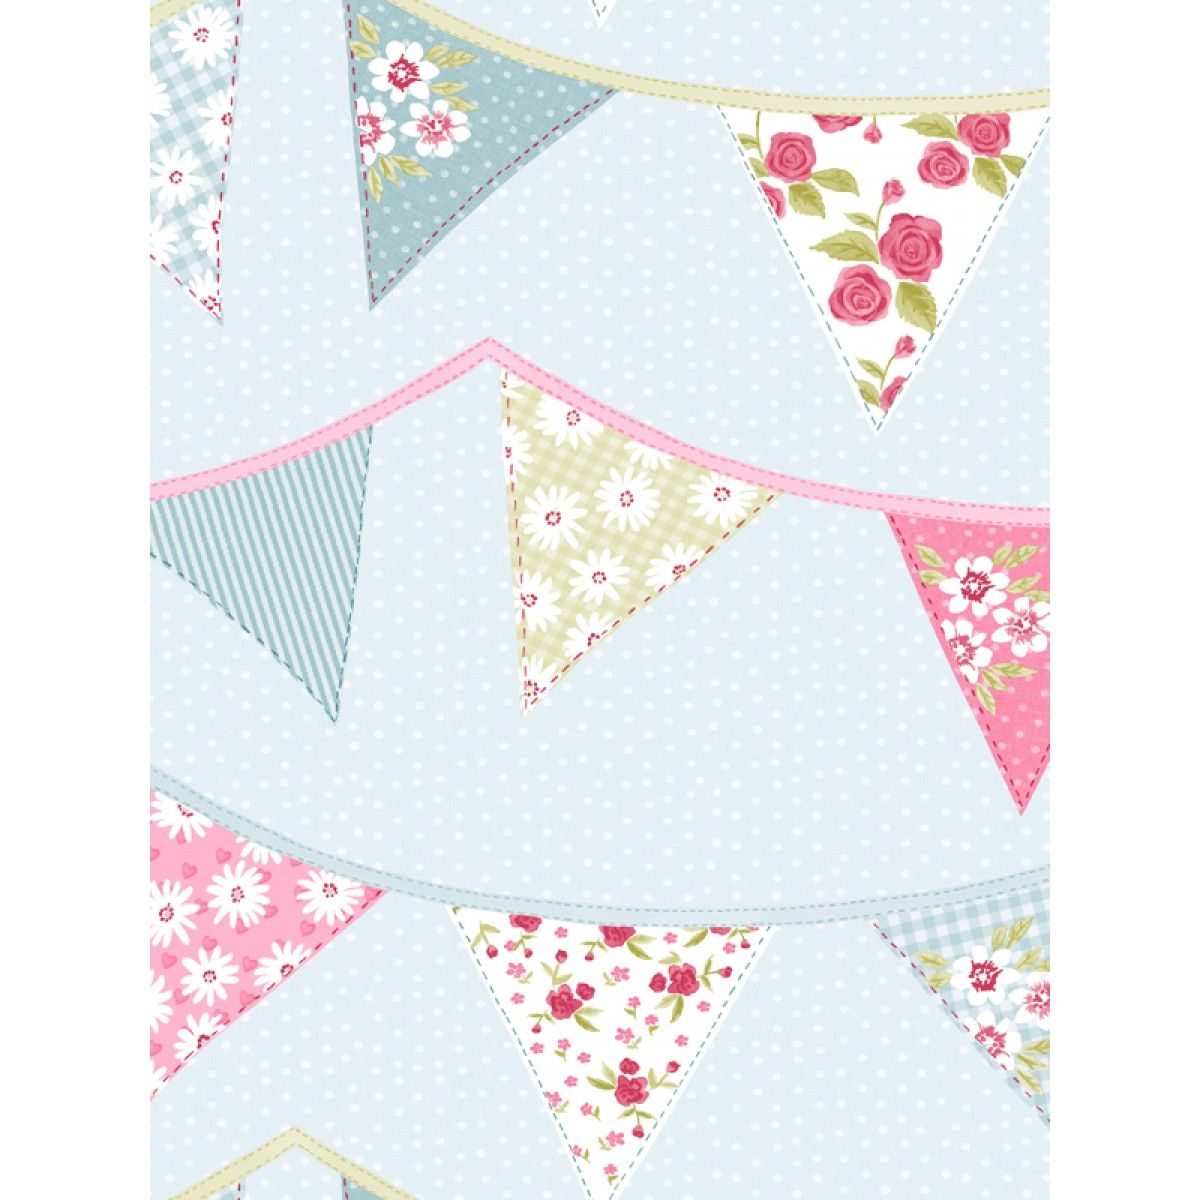 Wallpaper for Homes and Kids Bedrooms Pink polka dots